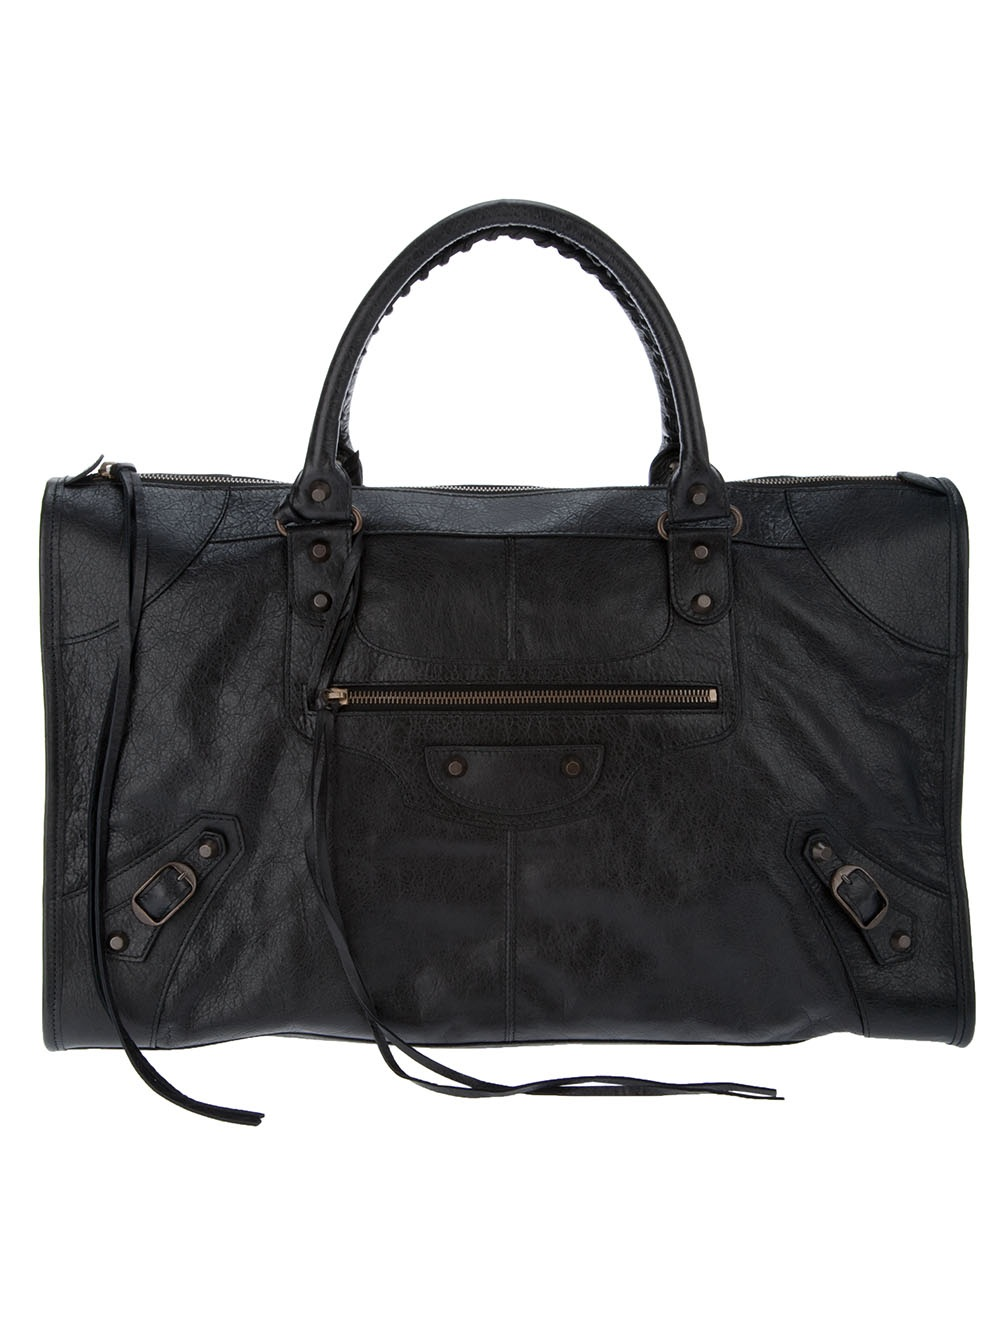 Free shipping on tote bags for women at thrushop-06mq49hz.ga Shop a variety of tote-bag styles and sizes from the best brands. Free shipping and returns.